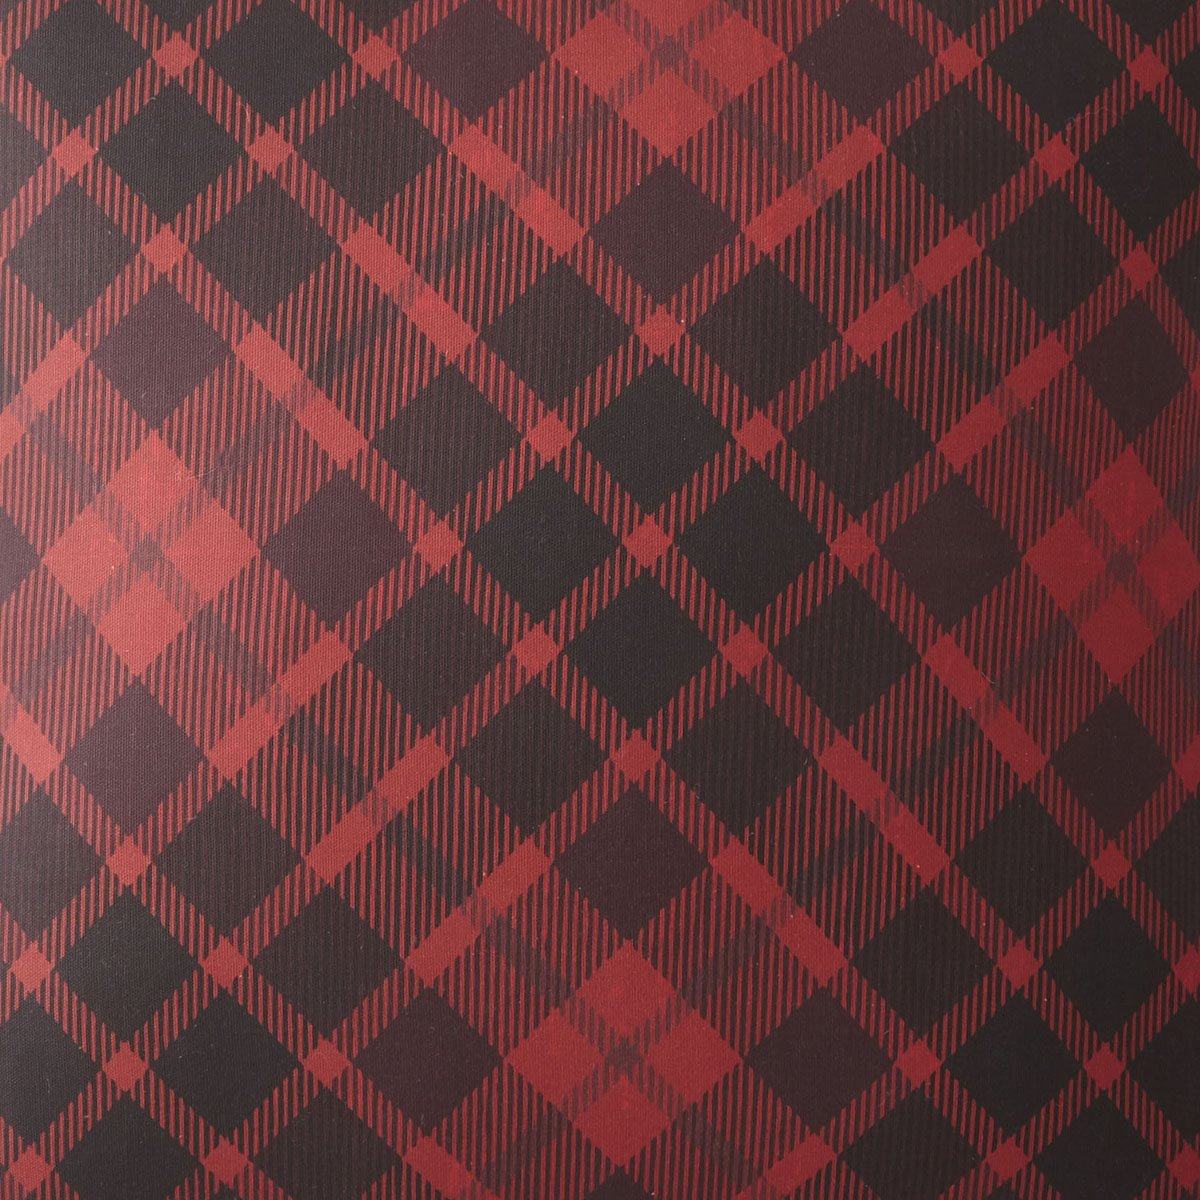 Scrollwork Fabric Per Yard - Red Plaid